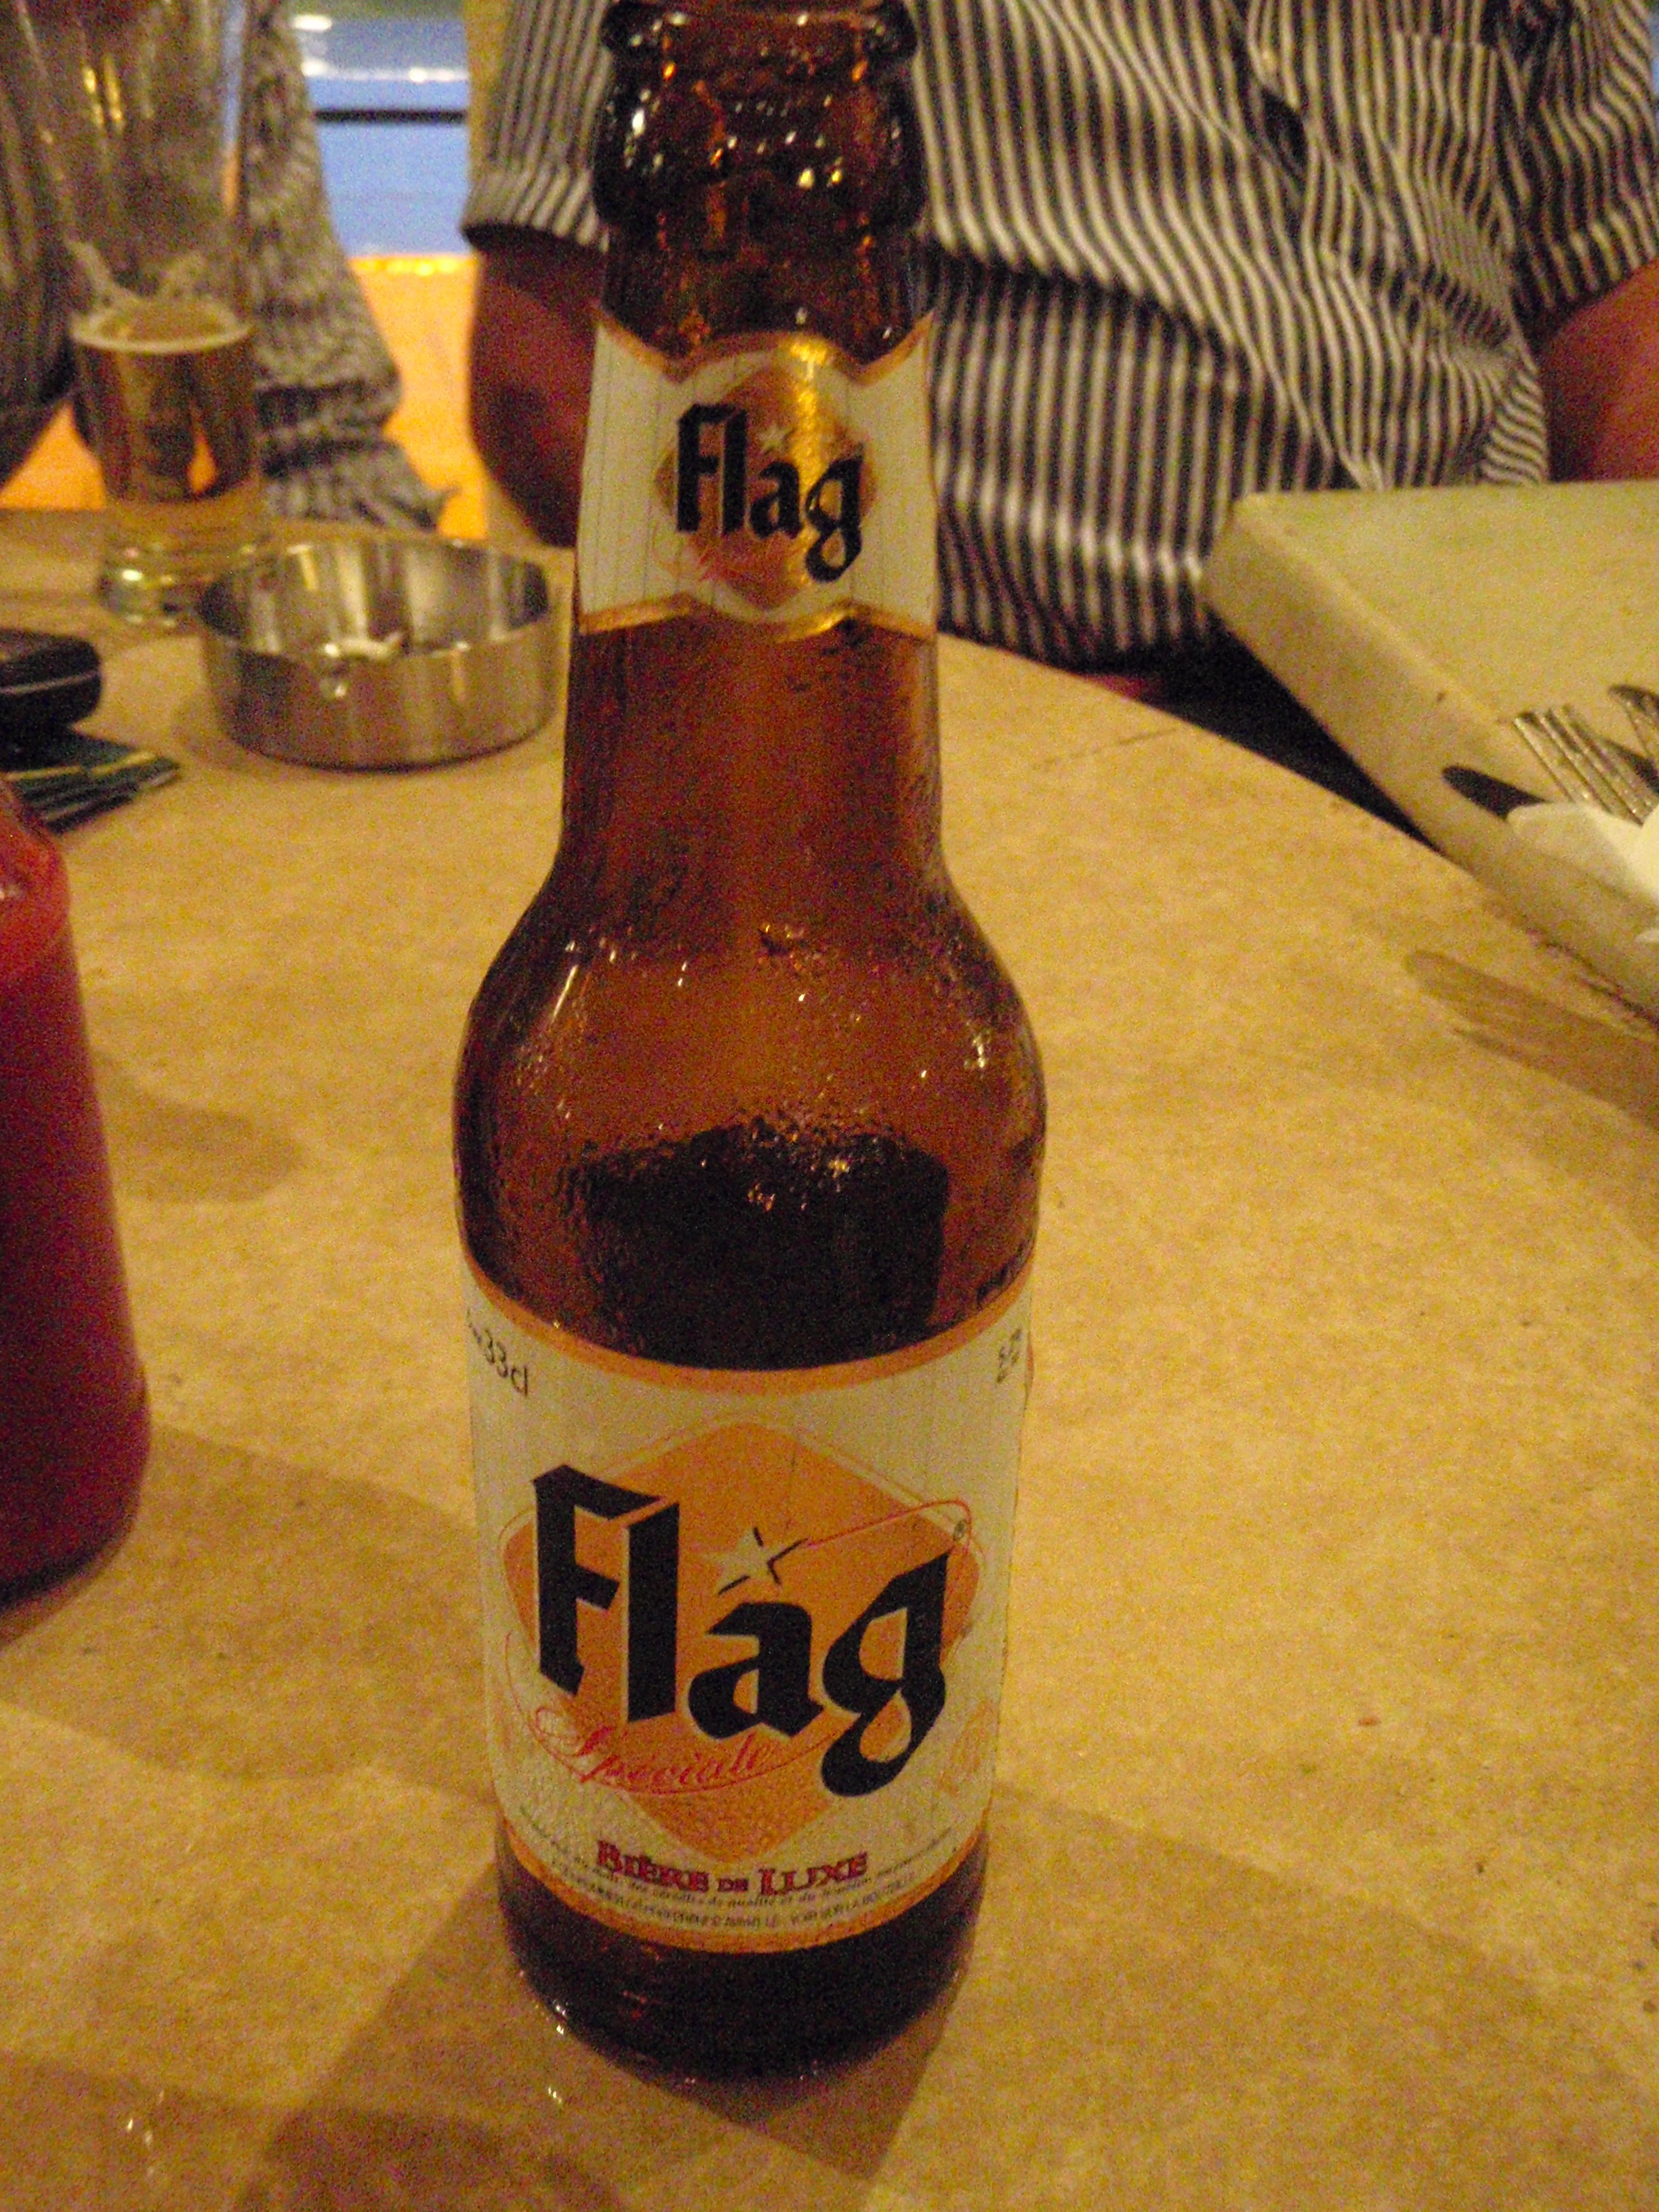 Flag, Local Beer; Conakry, Guinea; 2010